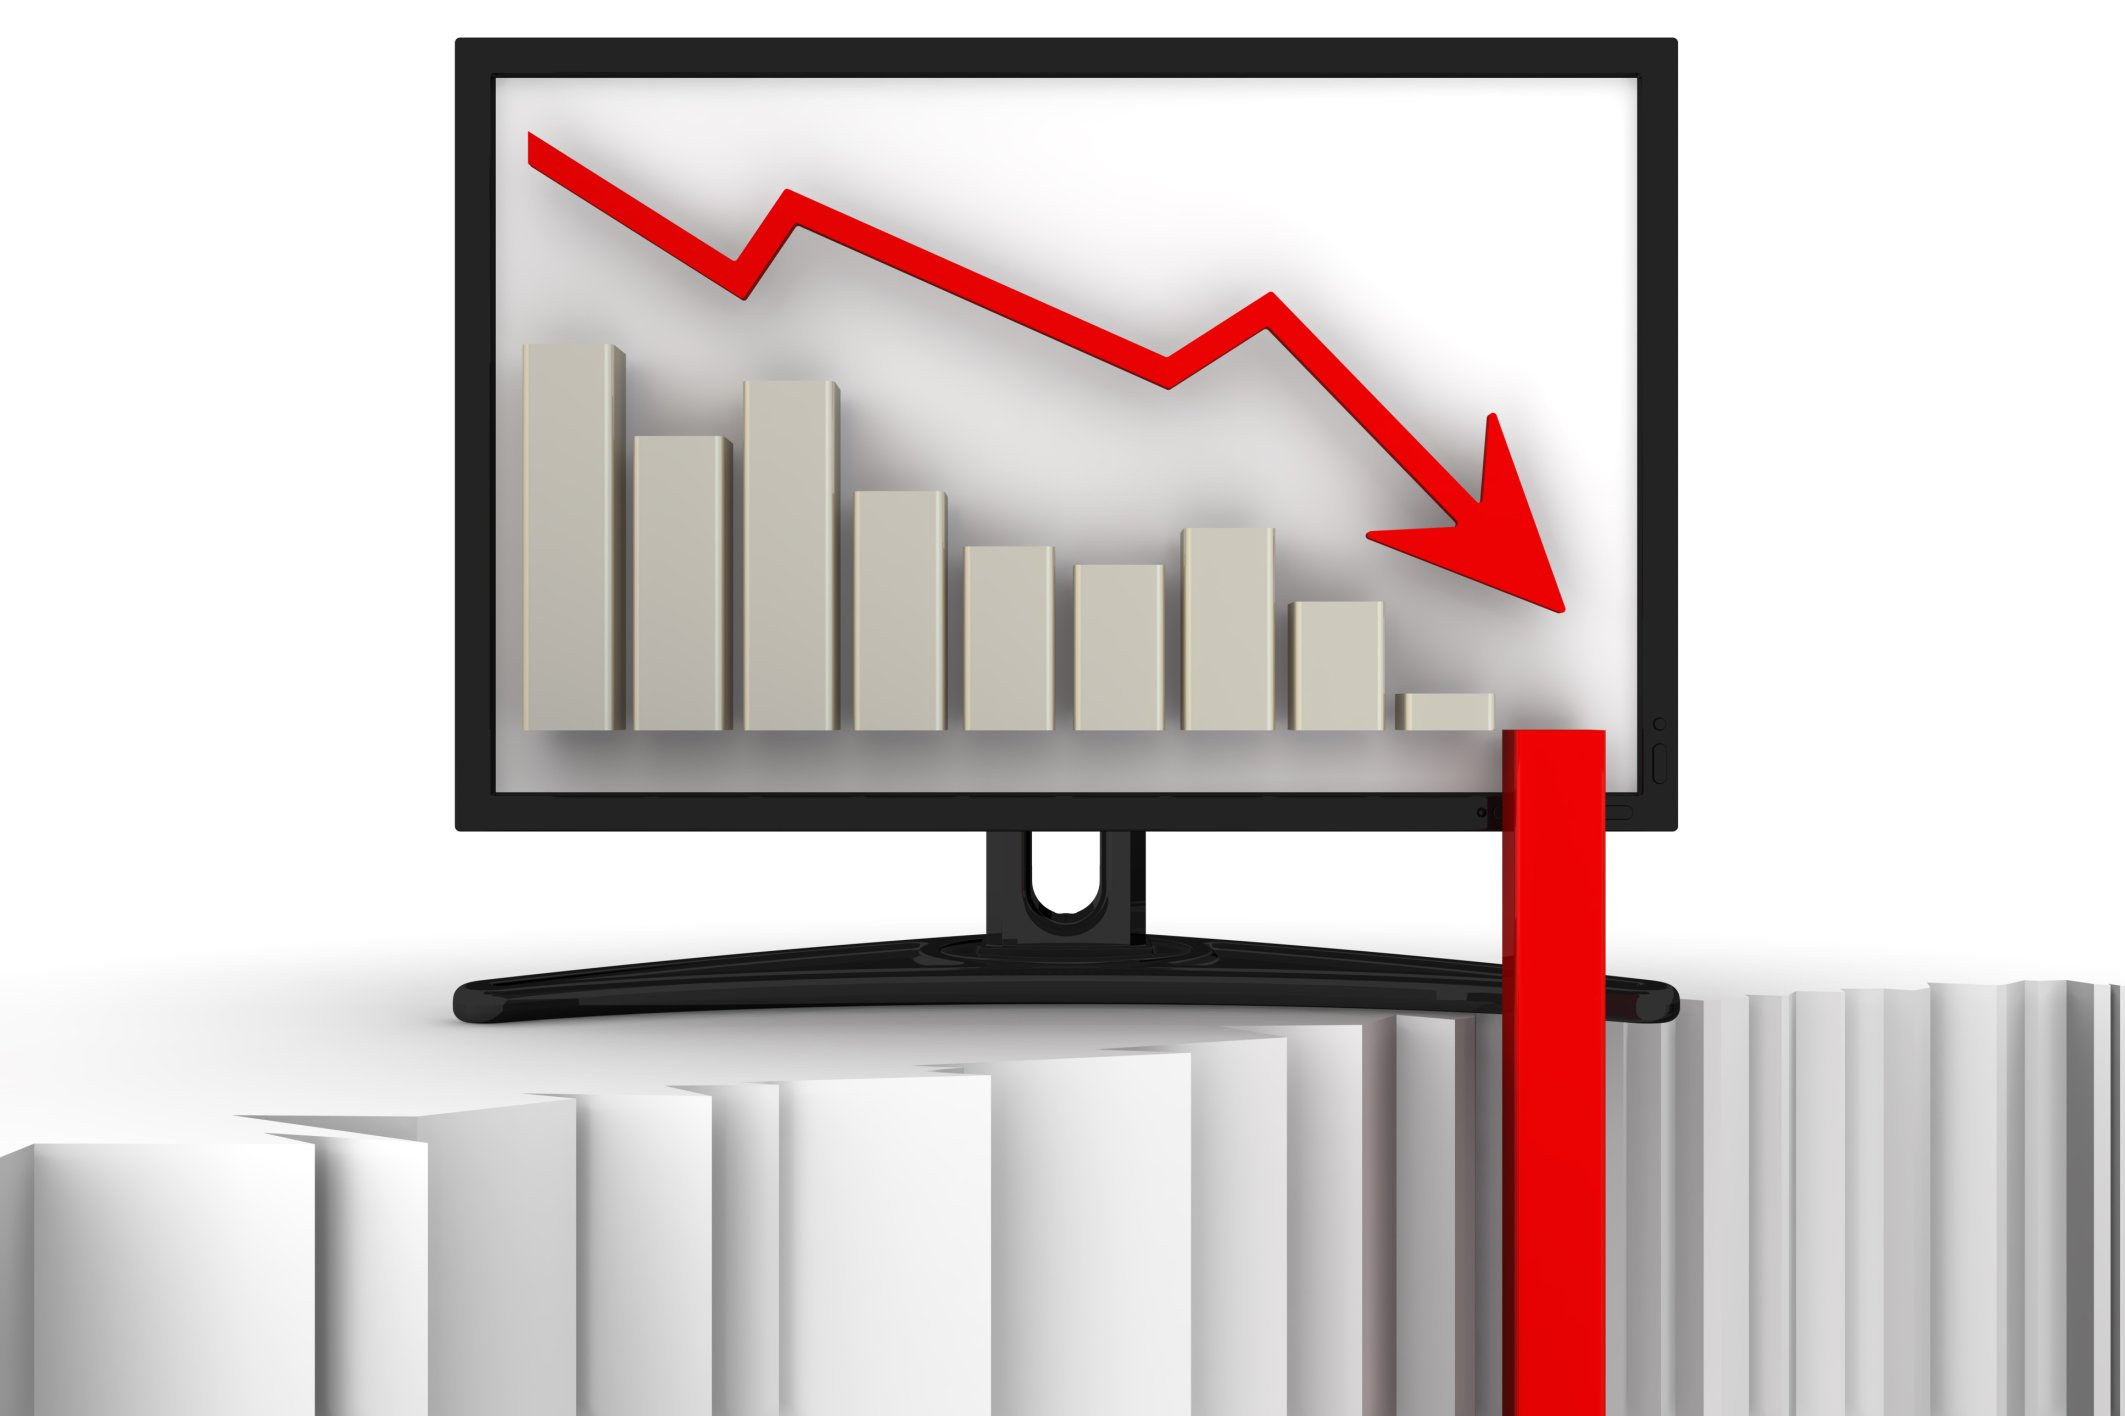 commercial p amp c pricing down in third quarter according to ciab survey   insurance news   newslocker